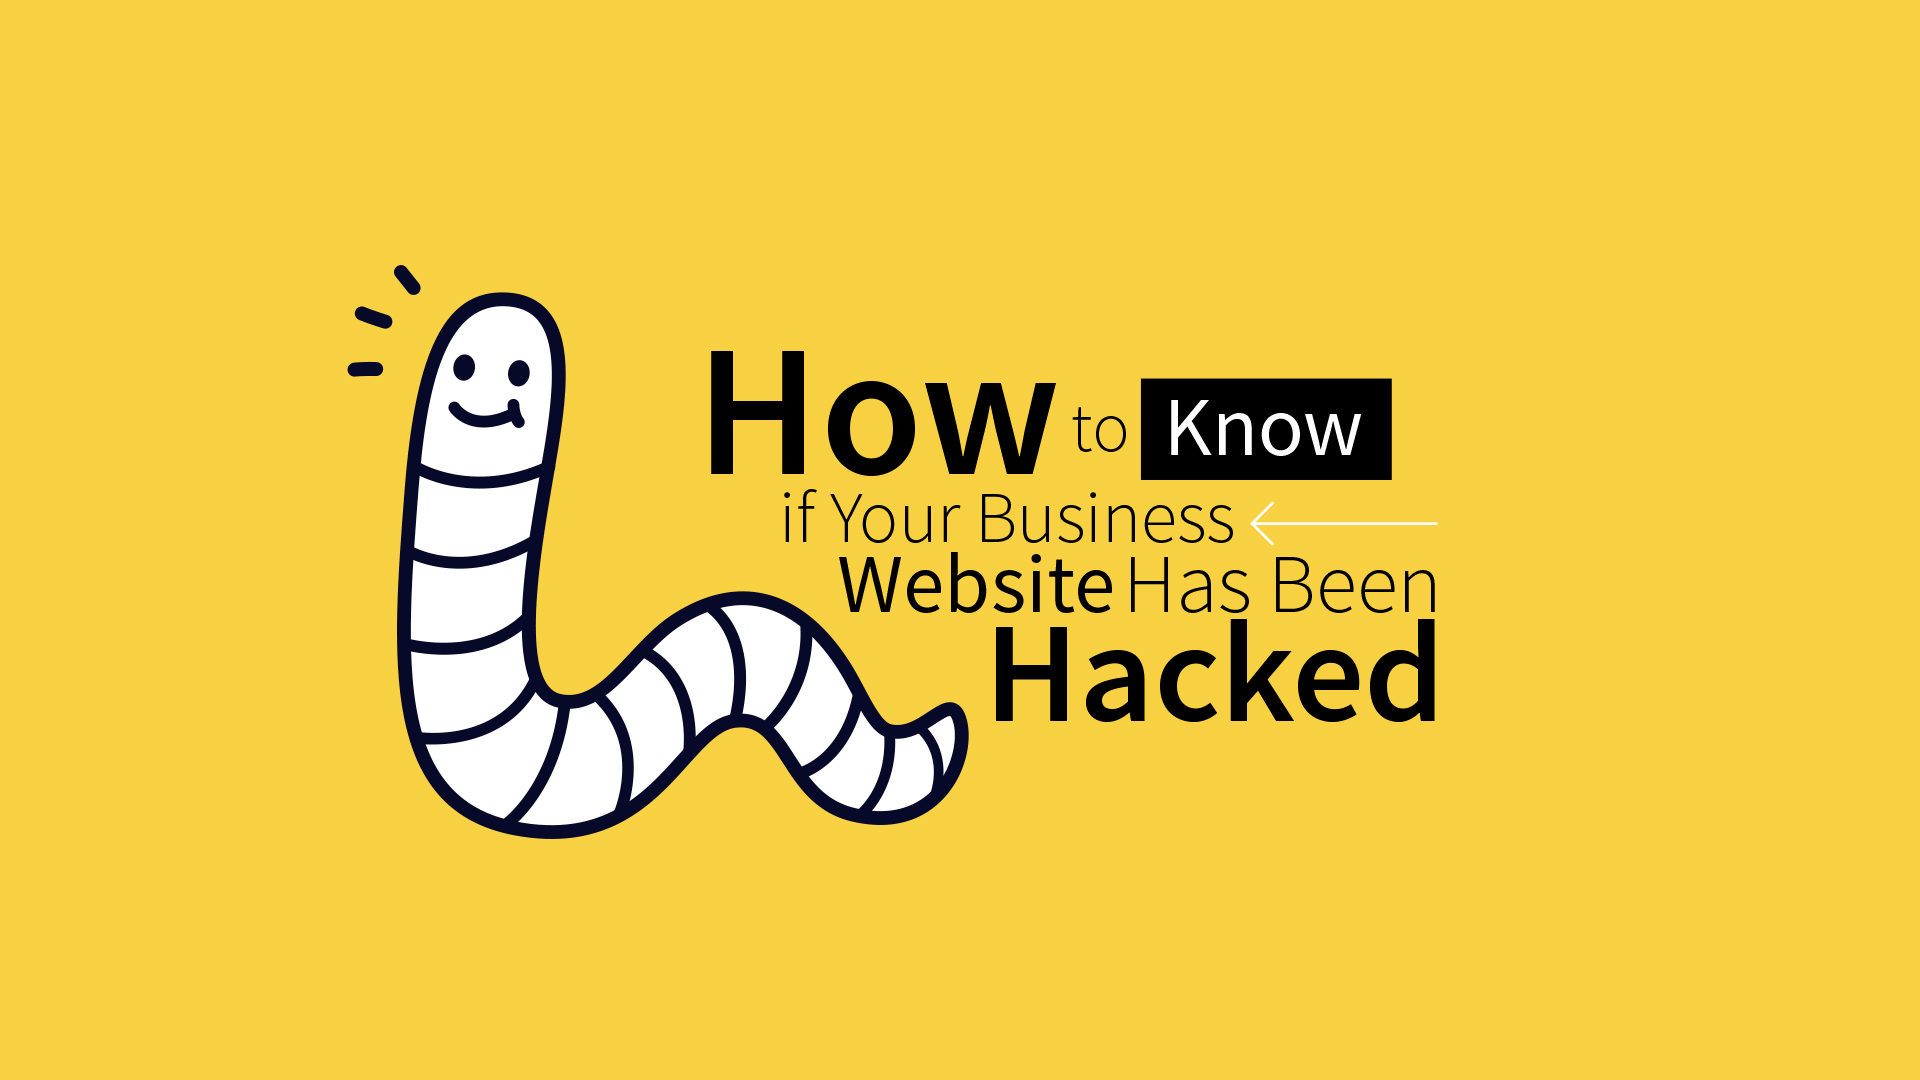 How to Know If Your Website is Hacked - Big Drop Inc Blog